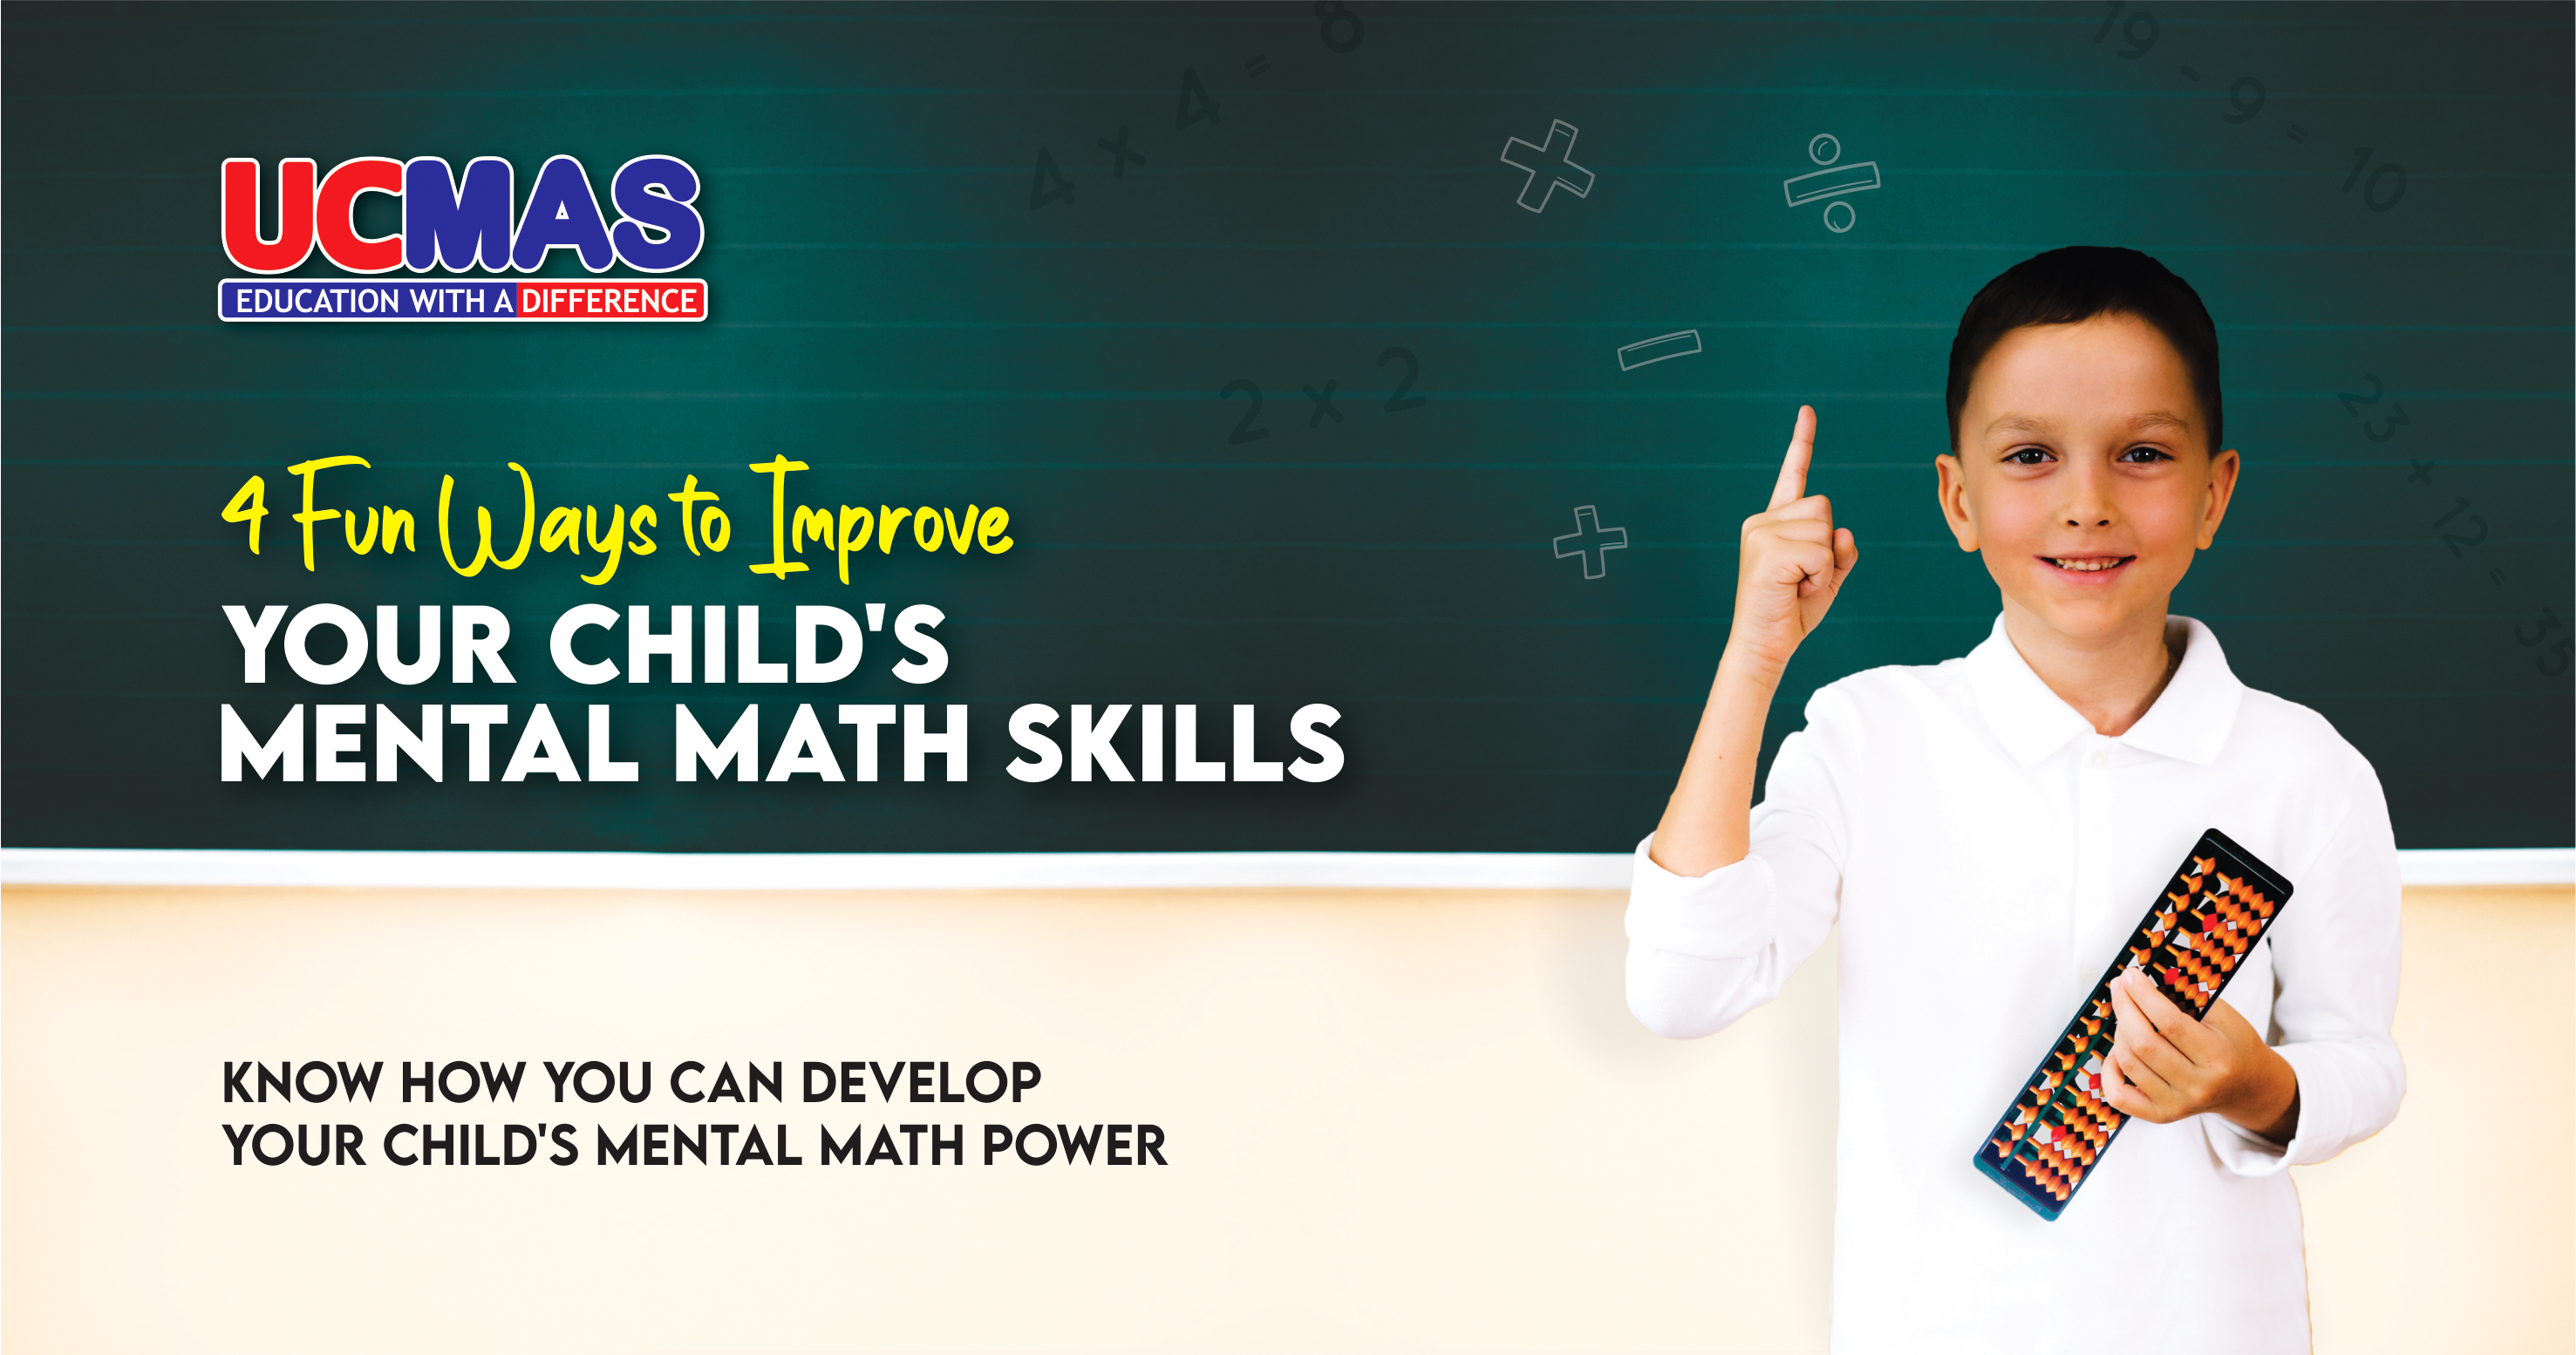 Know interesting ways to develop a child's mental math skills. Visit UCMAS mental math classes where children learn mental arithmetic using Abacus.